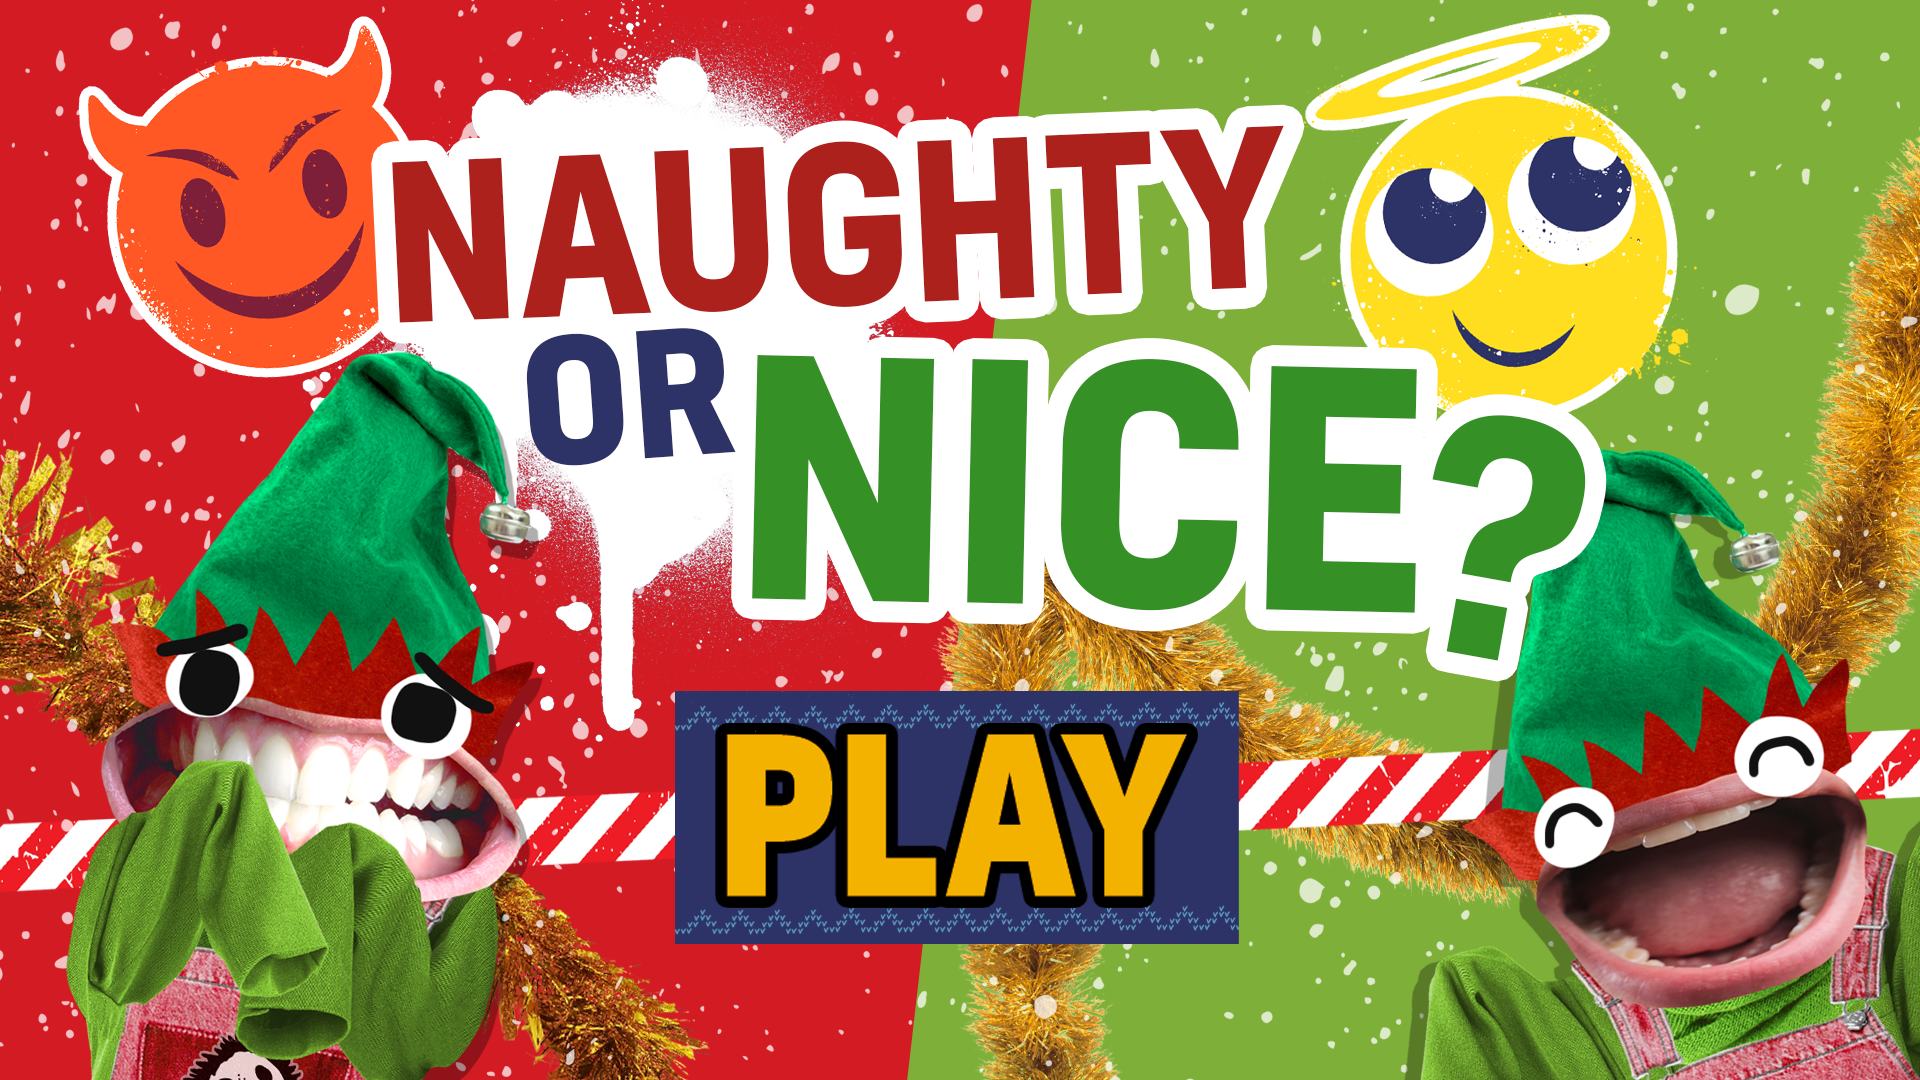 Are you ready to play Naughty or Nice?